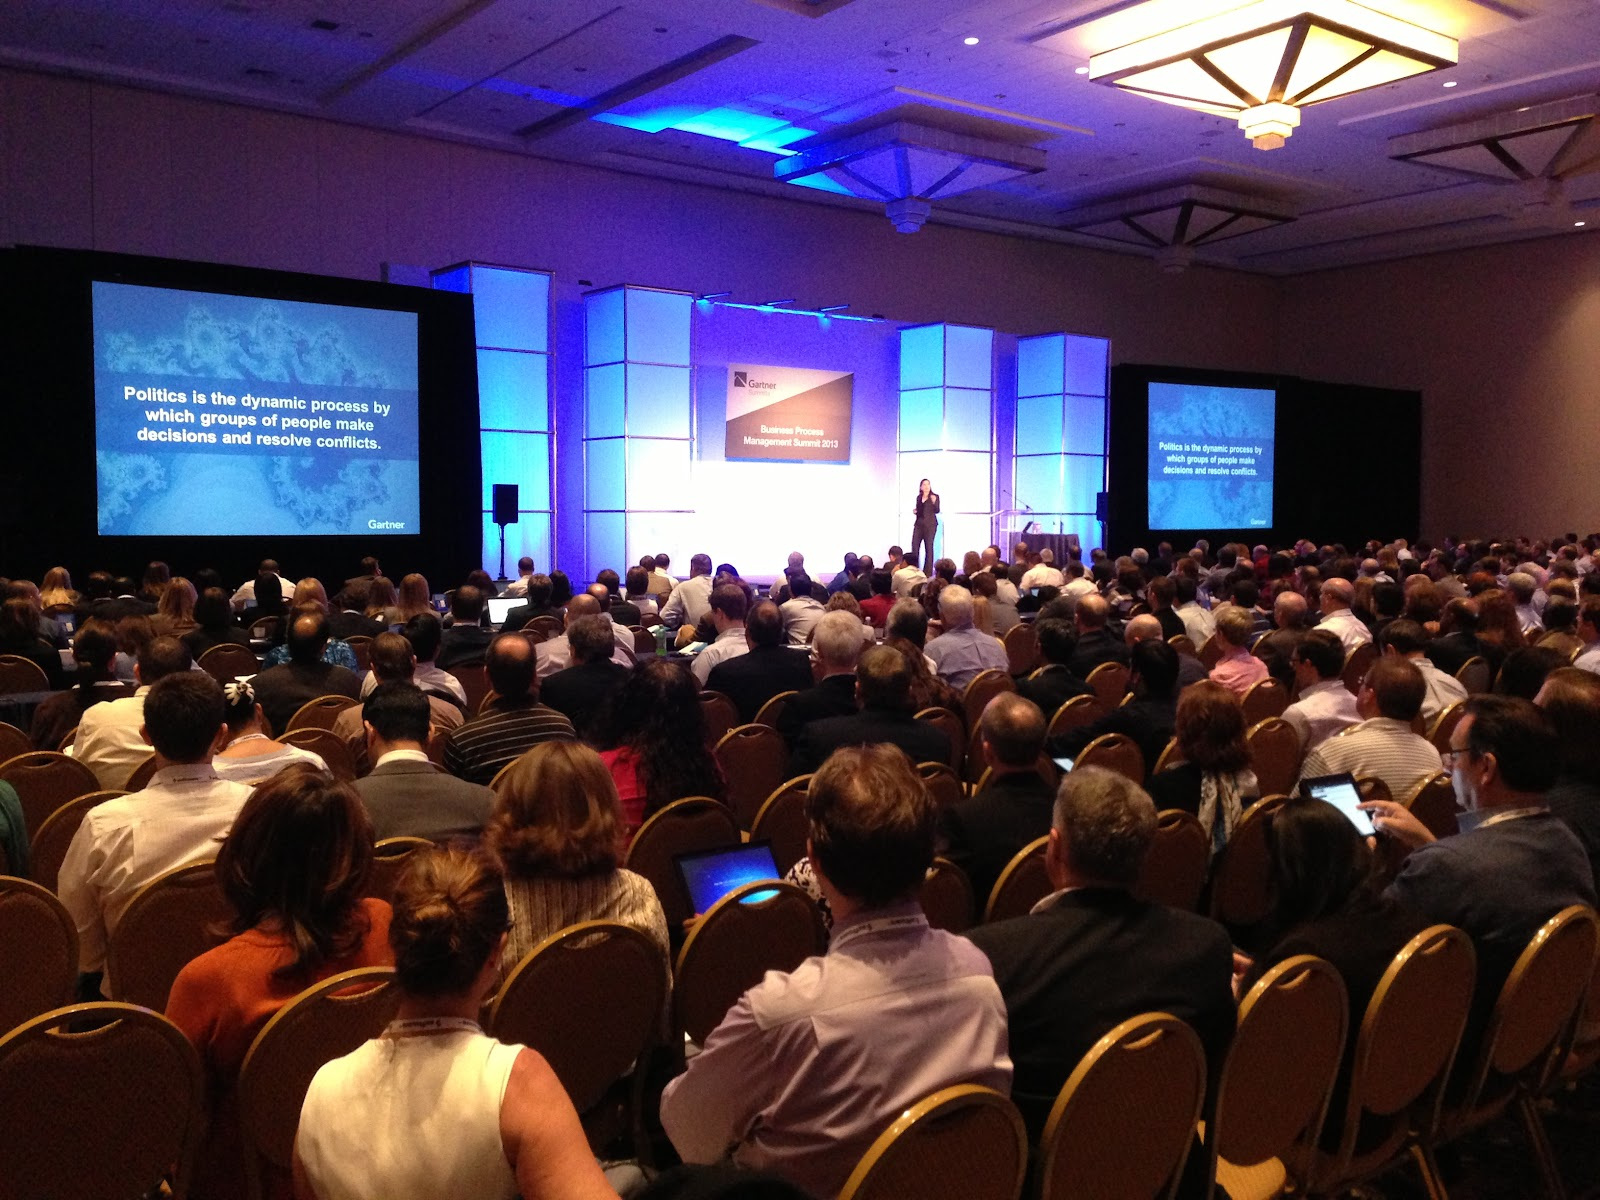 Eric D. Schabell: JBoss BRMS (BPM) at Gartner BPM conference in Washington, DC